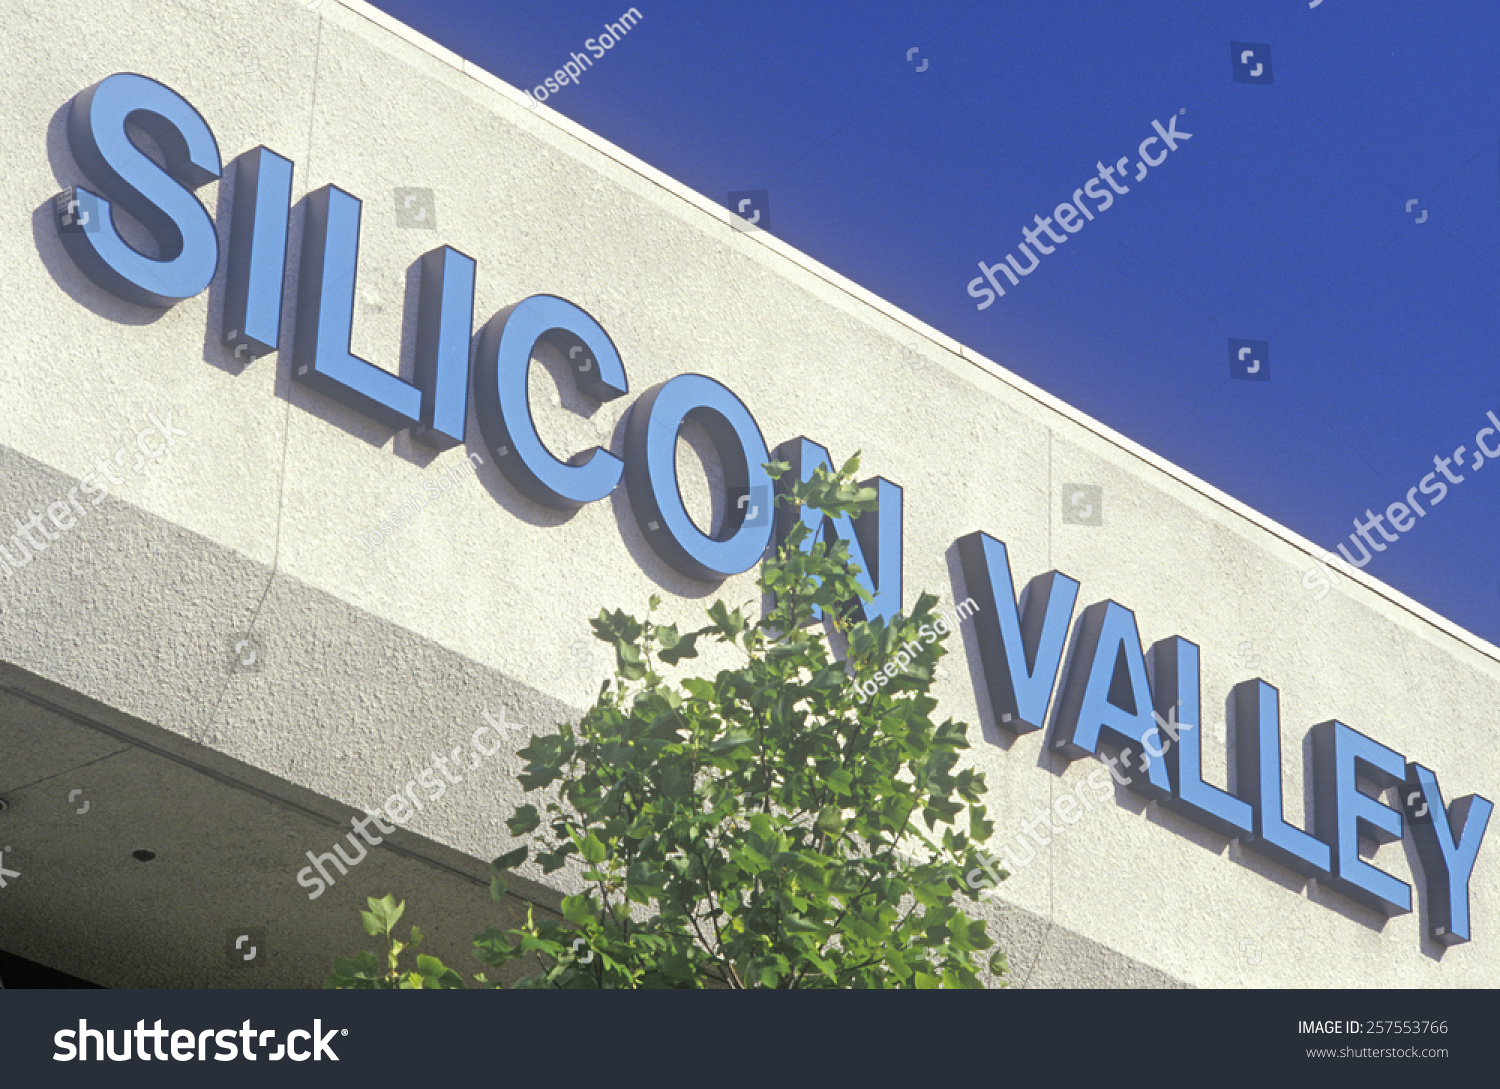 Stock options silicon valley